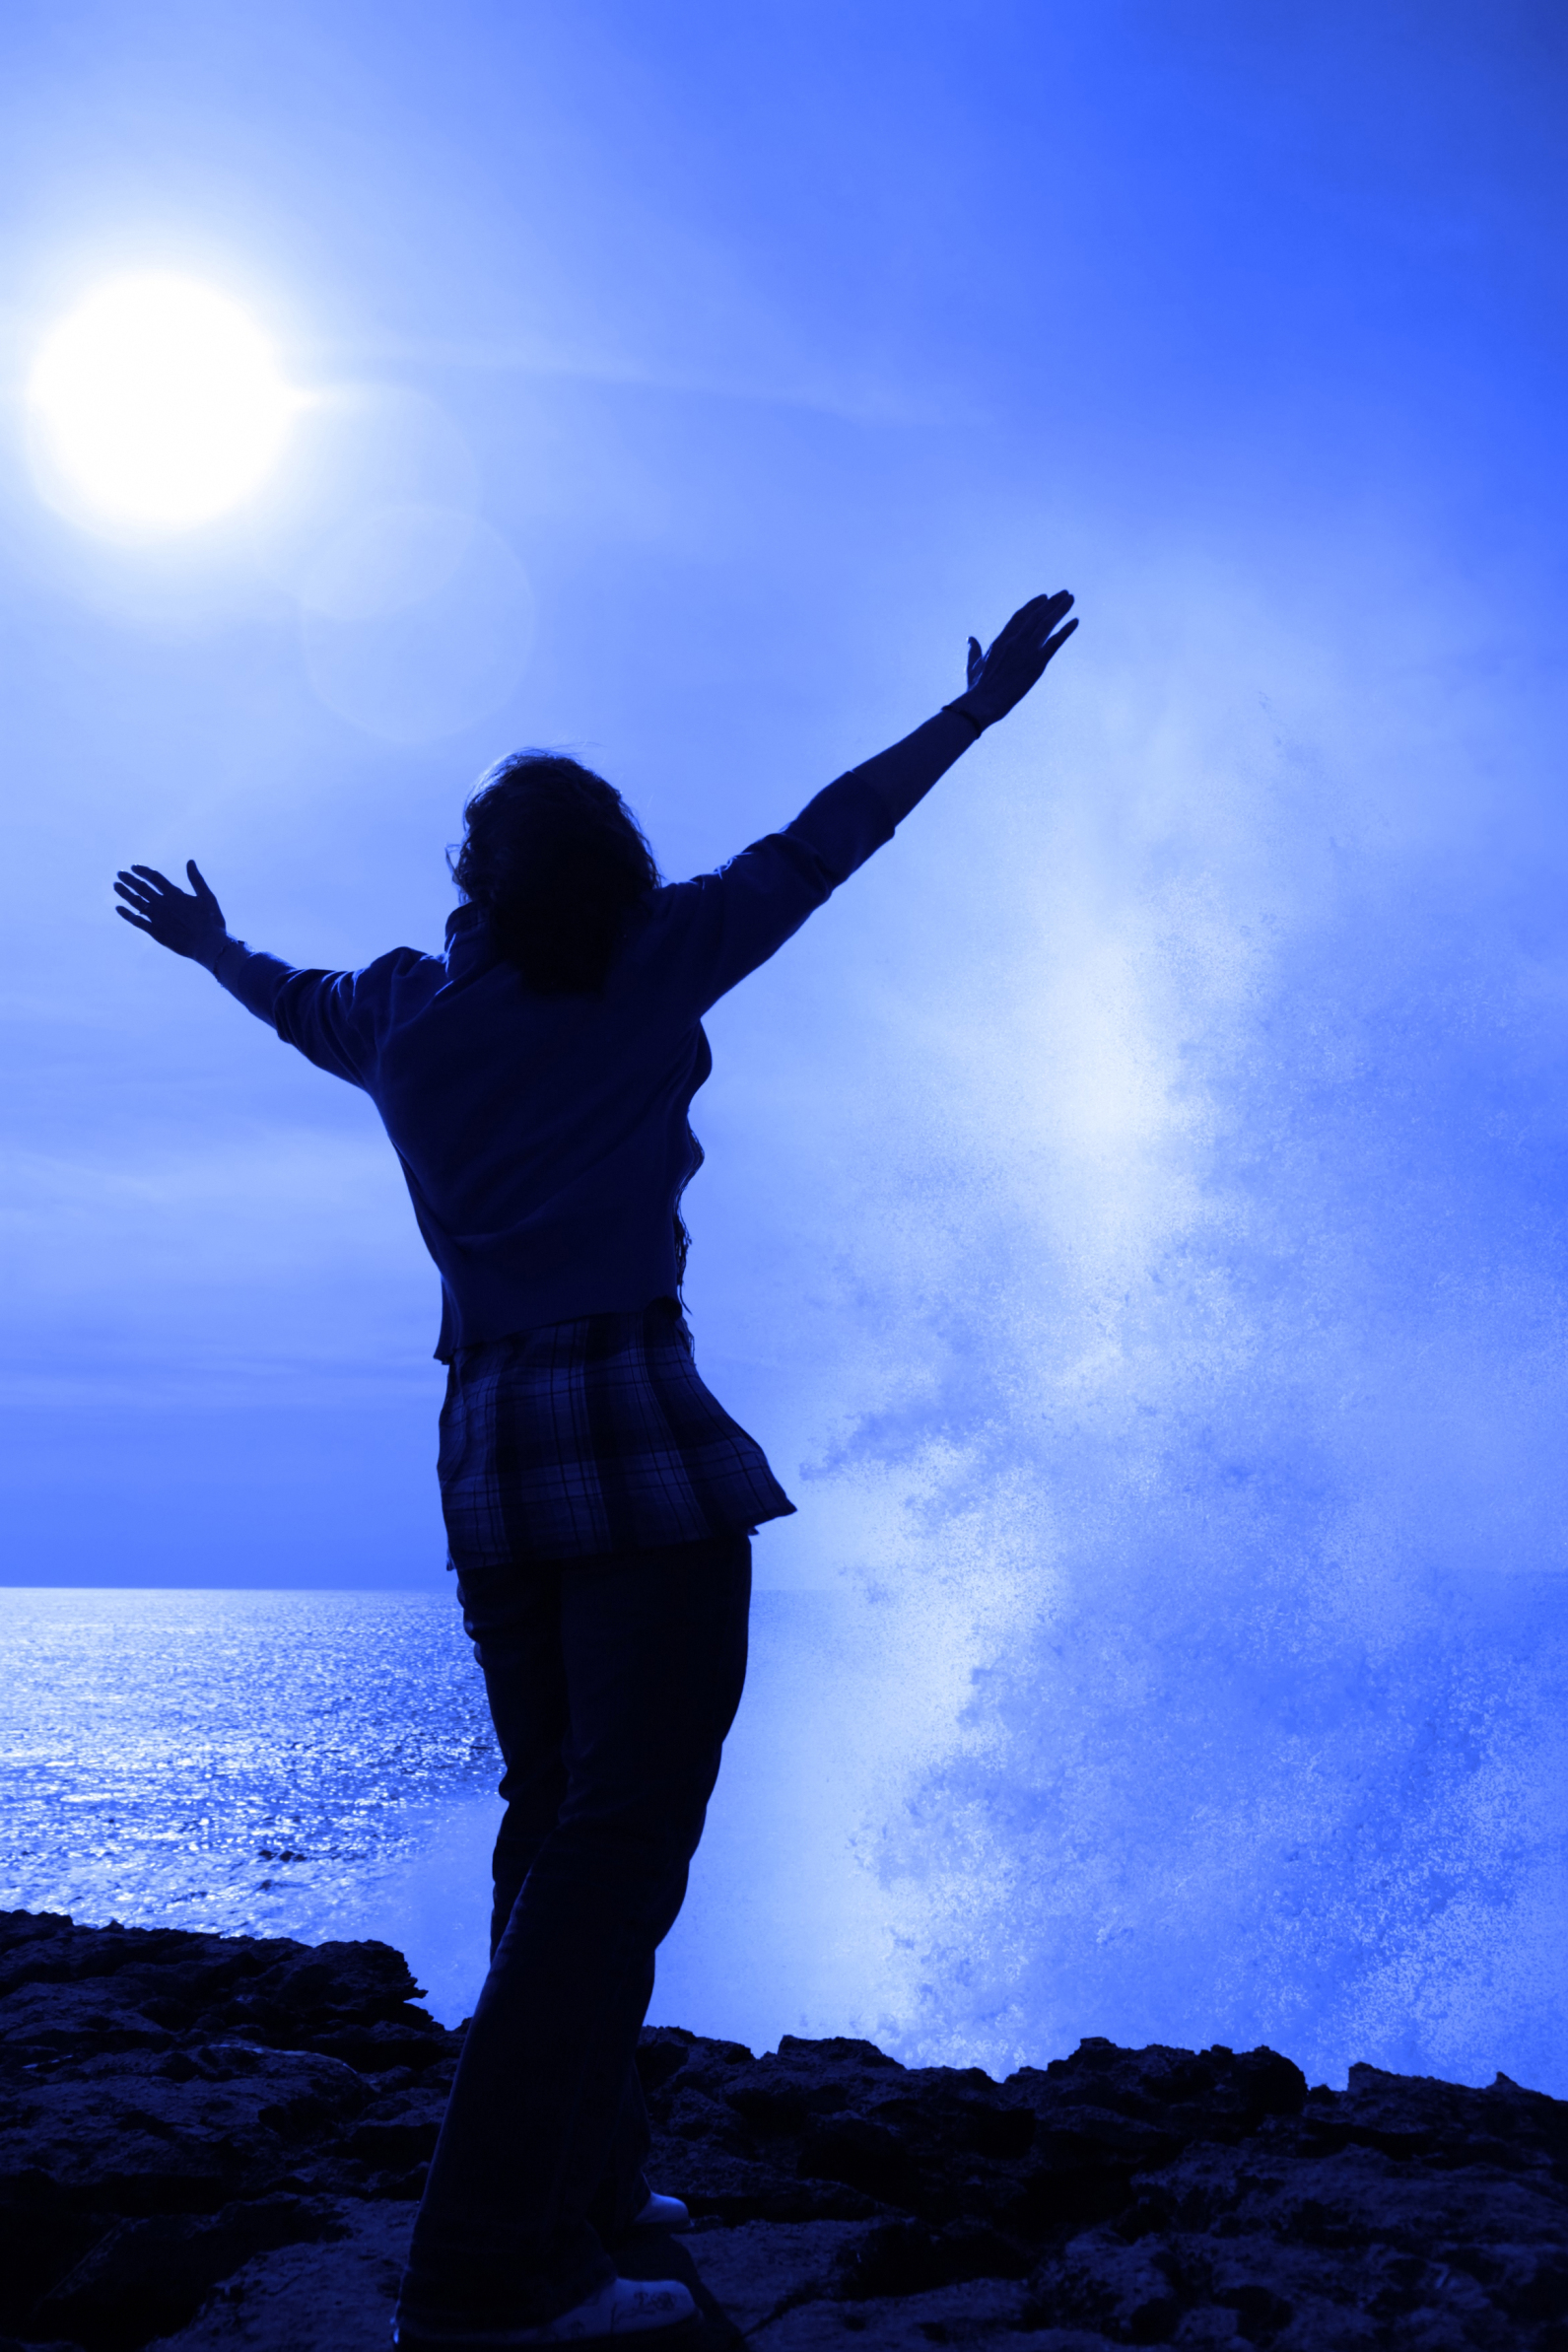 a lone woman raising her arms in awe at the powerful wave on the cliffs edge